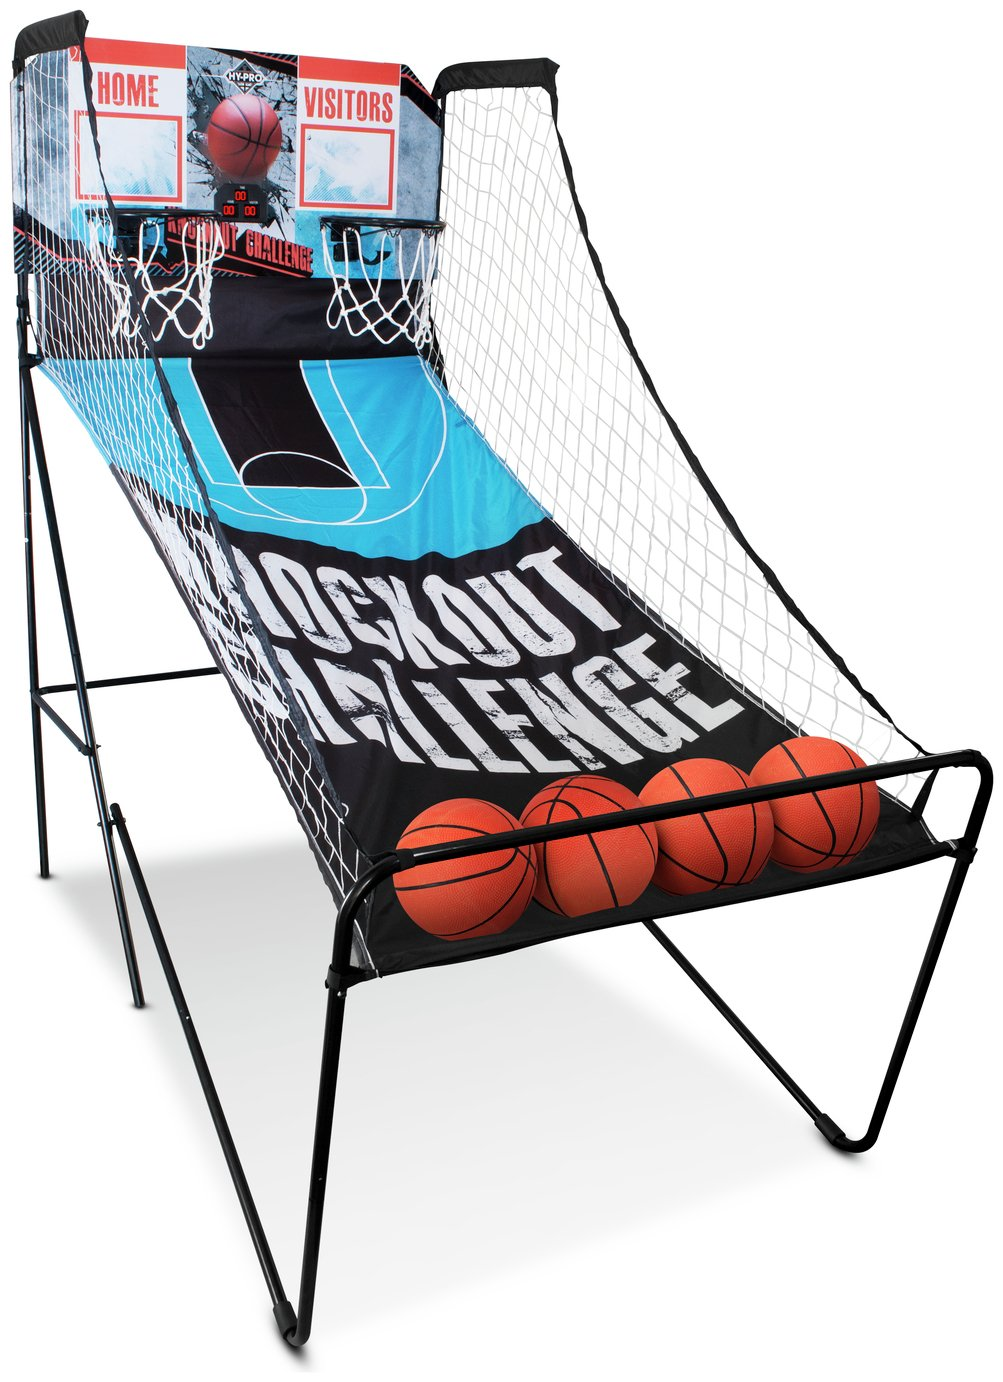 Hy-Pro - 2 Player Basketball System lowest price